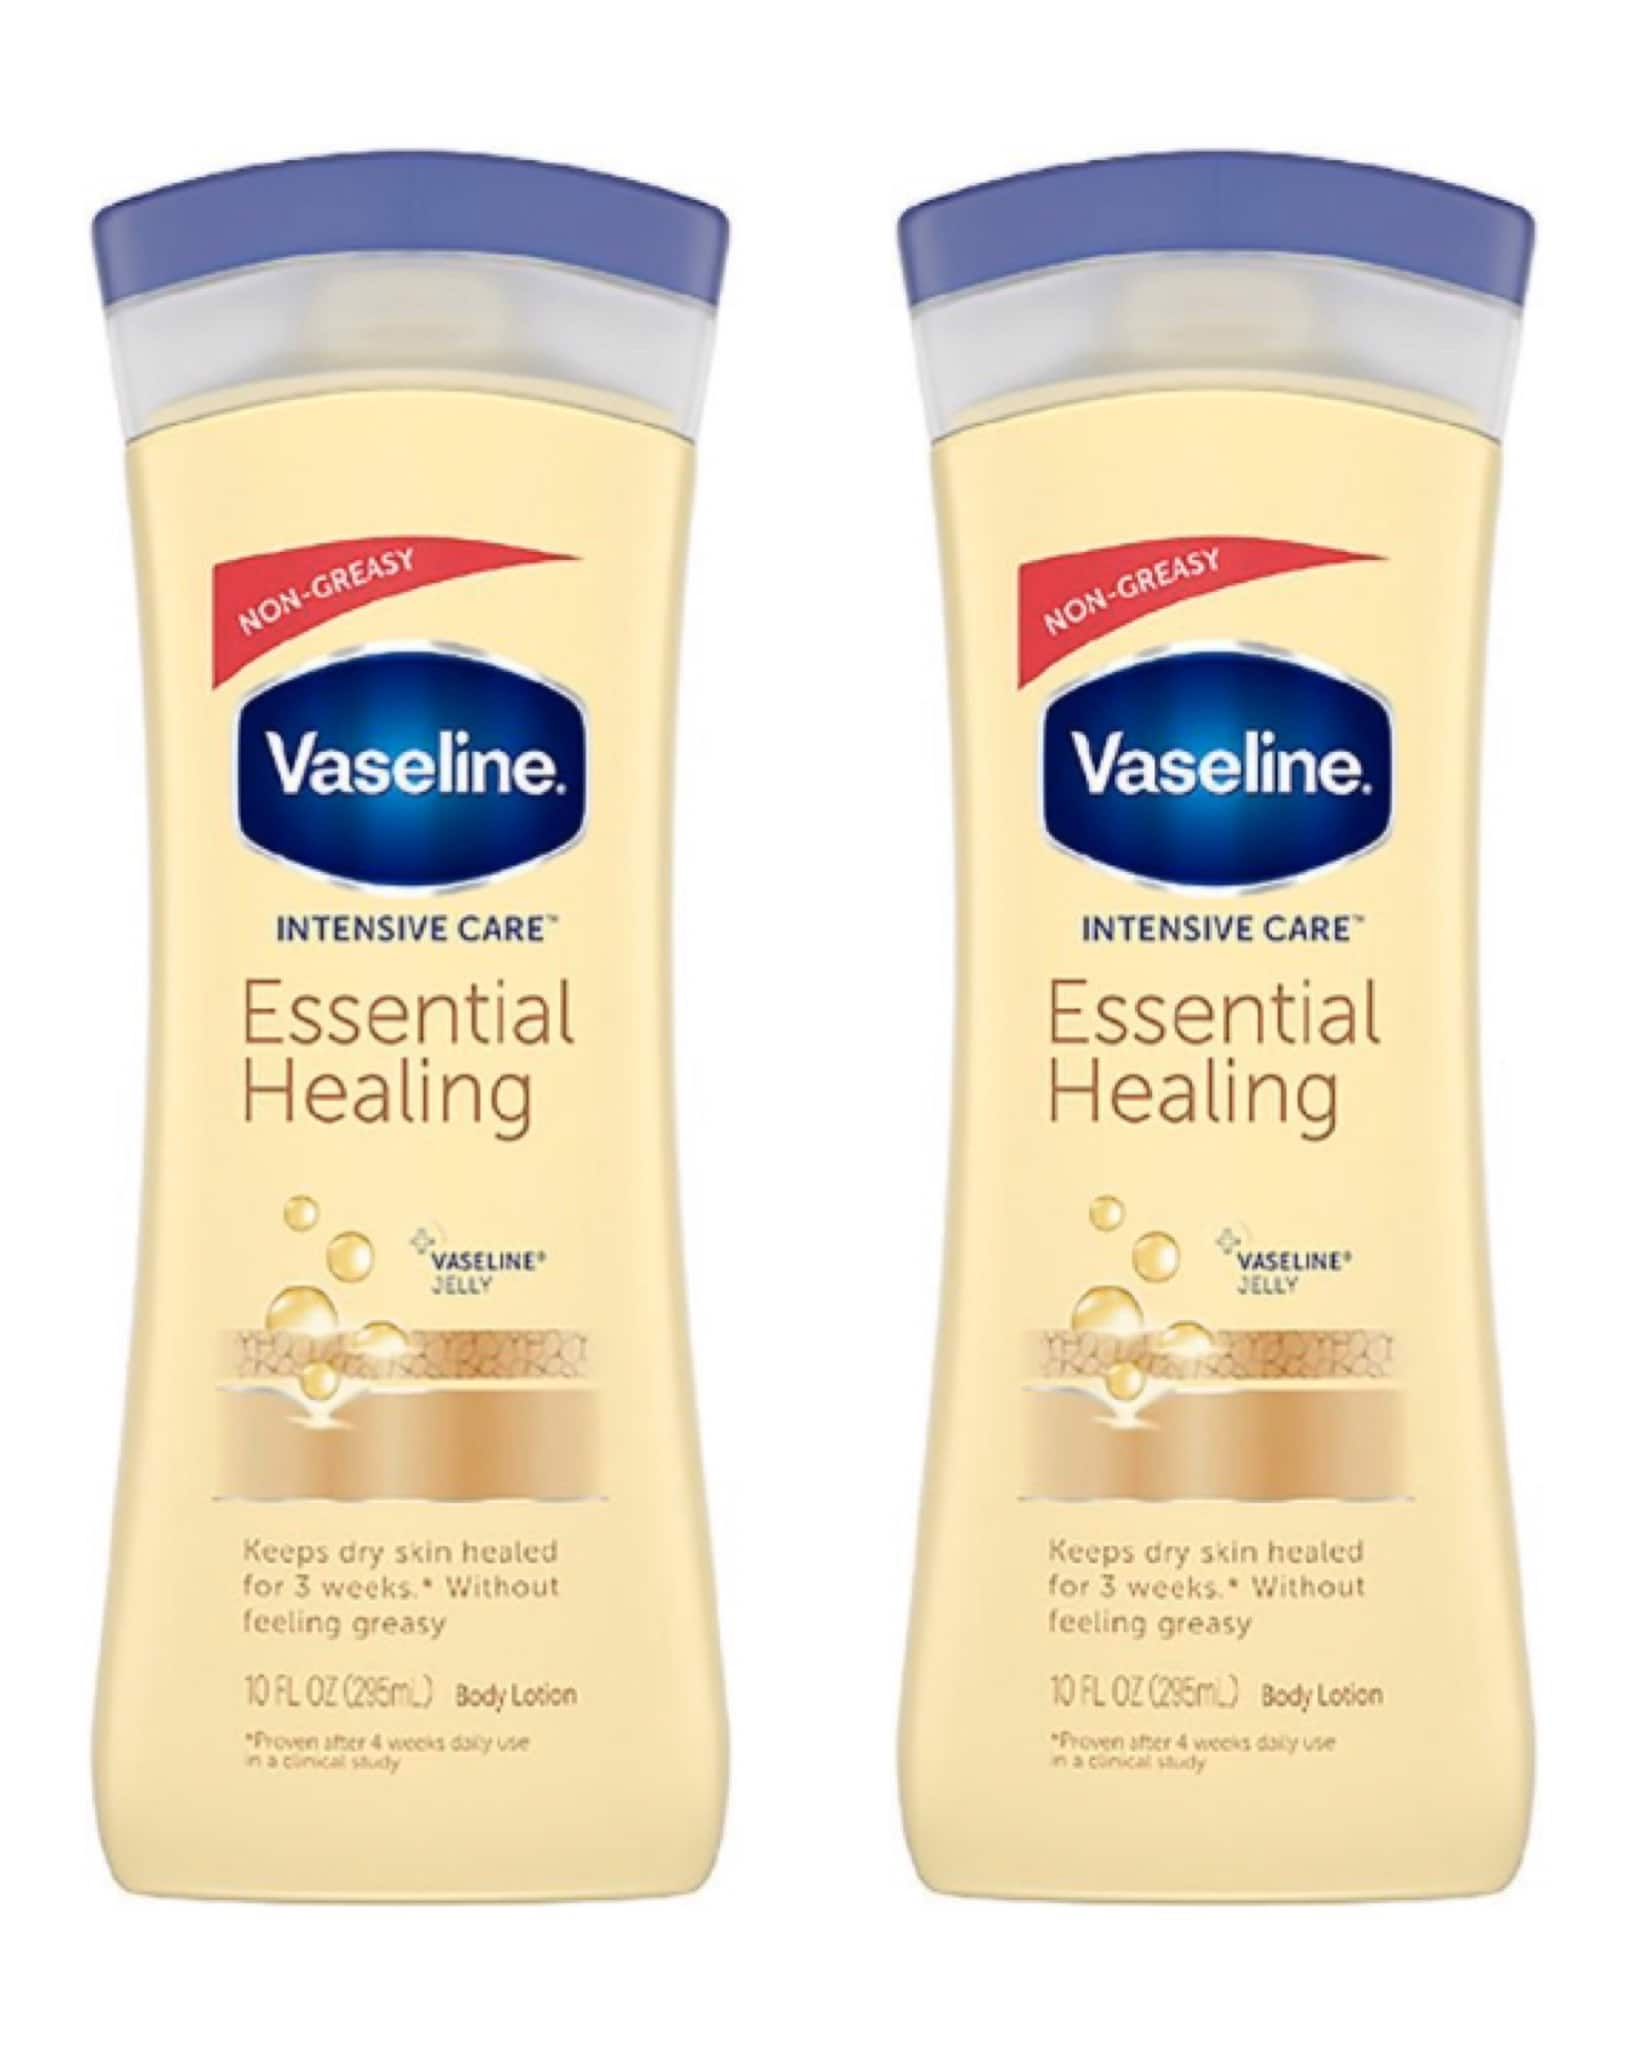 10-oz Vaseline Essential Healing Body Lotion 2 for $4.44 ($2.22 each), 7.5-oz Vaseline Cocoa Butter Petroleum Jelly 2 for $6.24 ($3.12 each) + Free Ship to Store at Walgreens